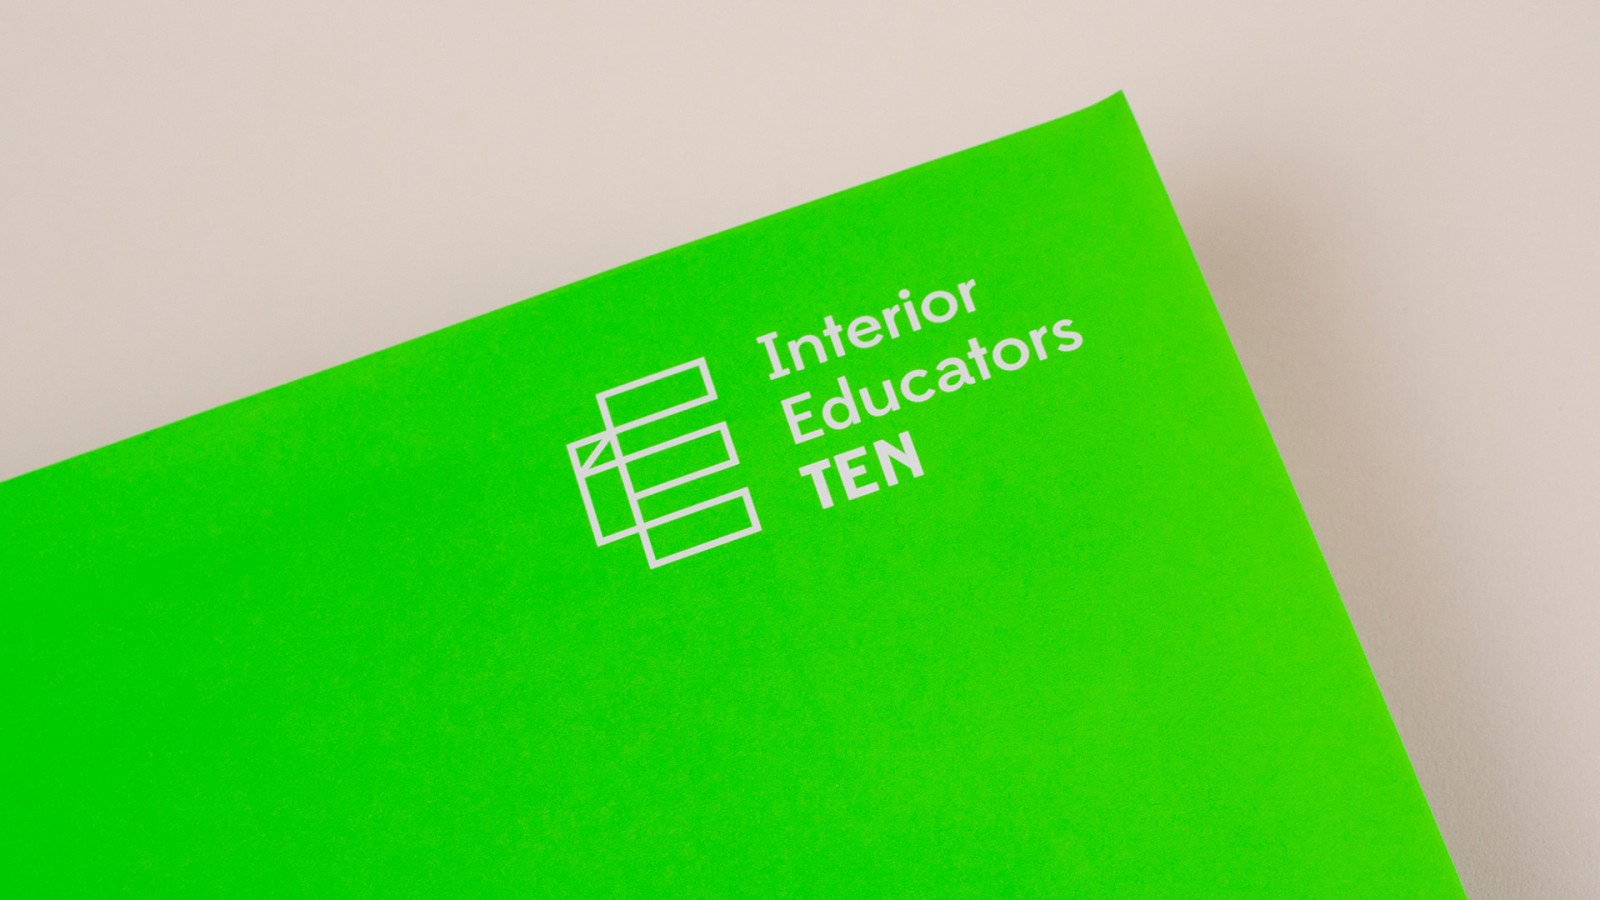 Gallery image for Interior Educators Branding project